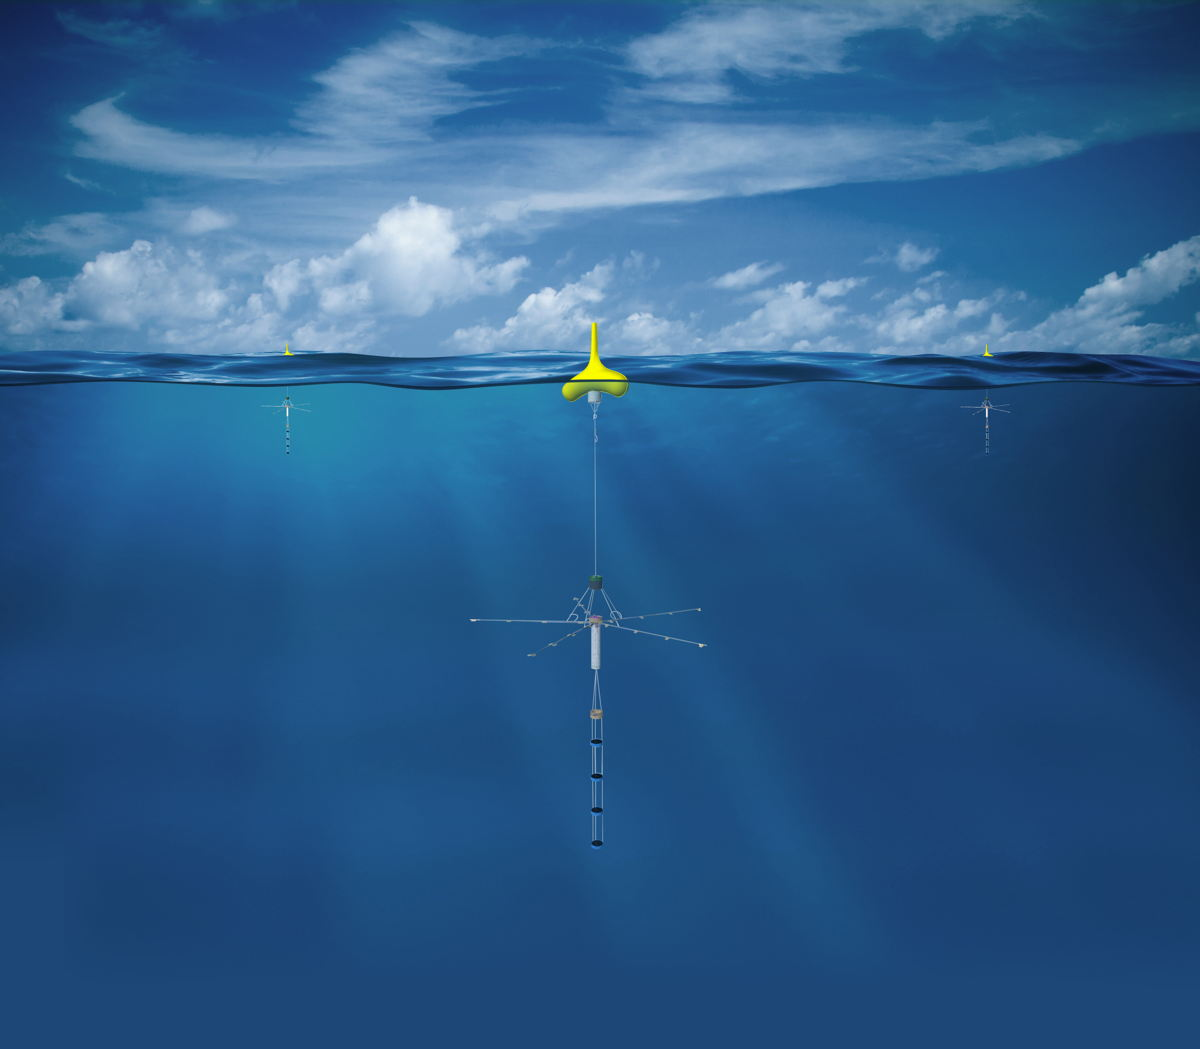 Artist's impression of a SonoFlash sonobuoy at sea  © Thales